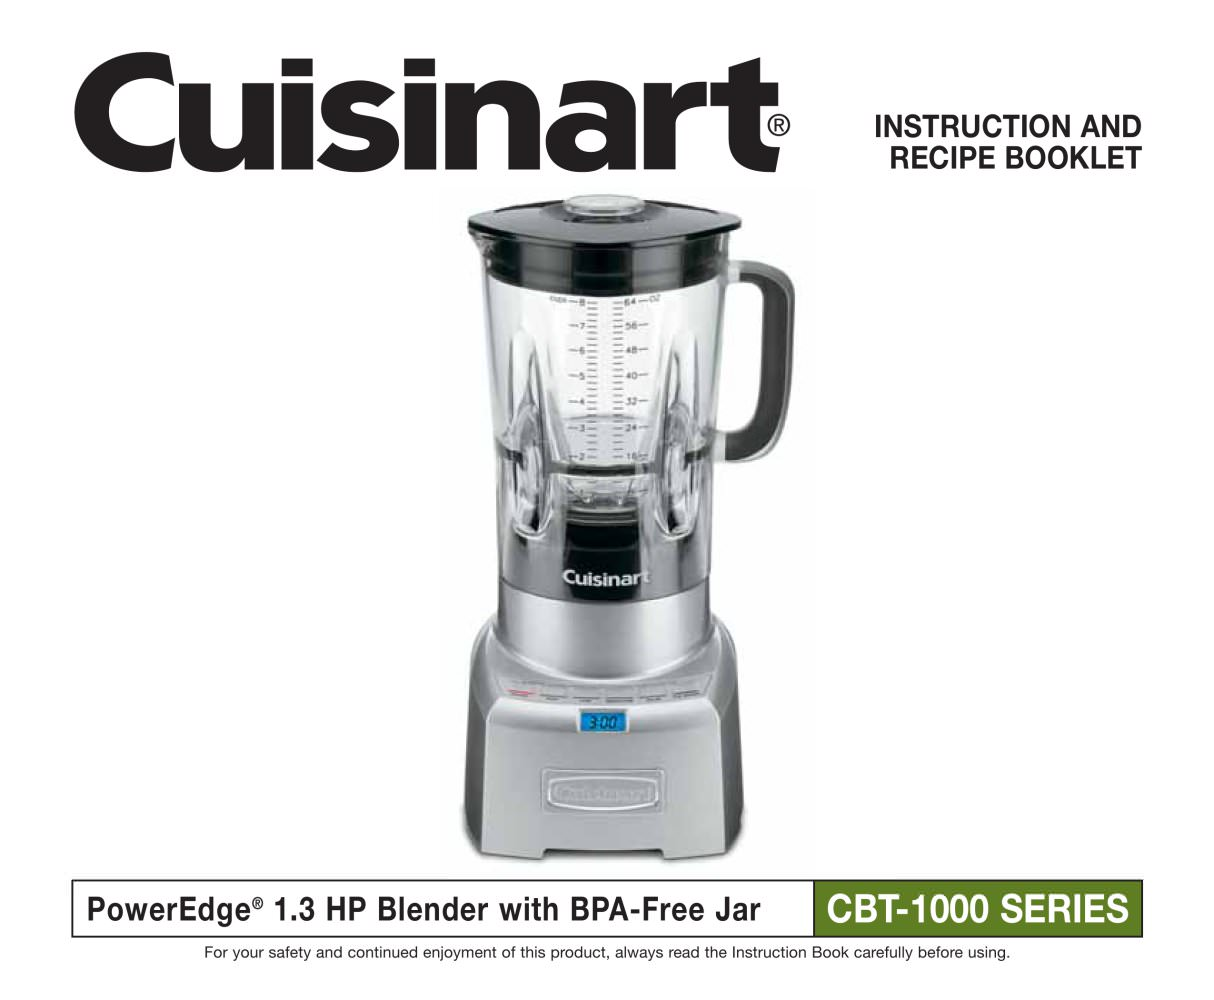 Poweredge 1000 watt blender cbt 1000 cuisinart france pdf poweredge 1000 watt blender cbt 1000 1 29 pages forumfinder Choice Image